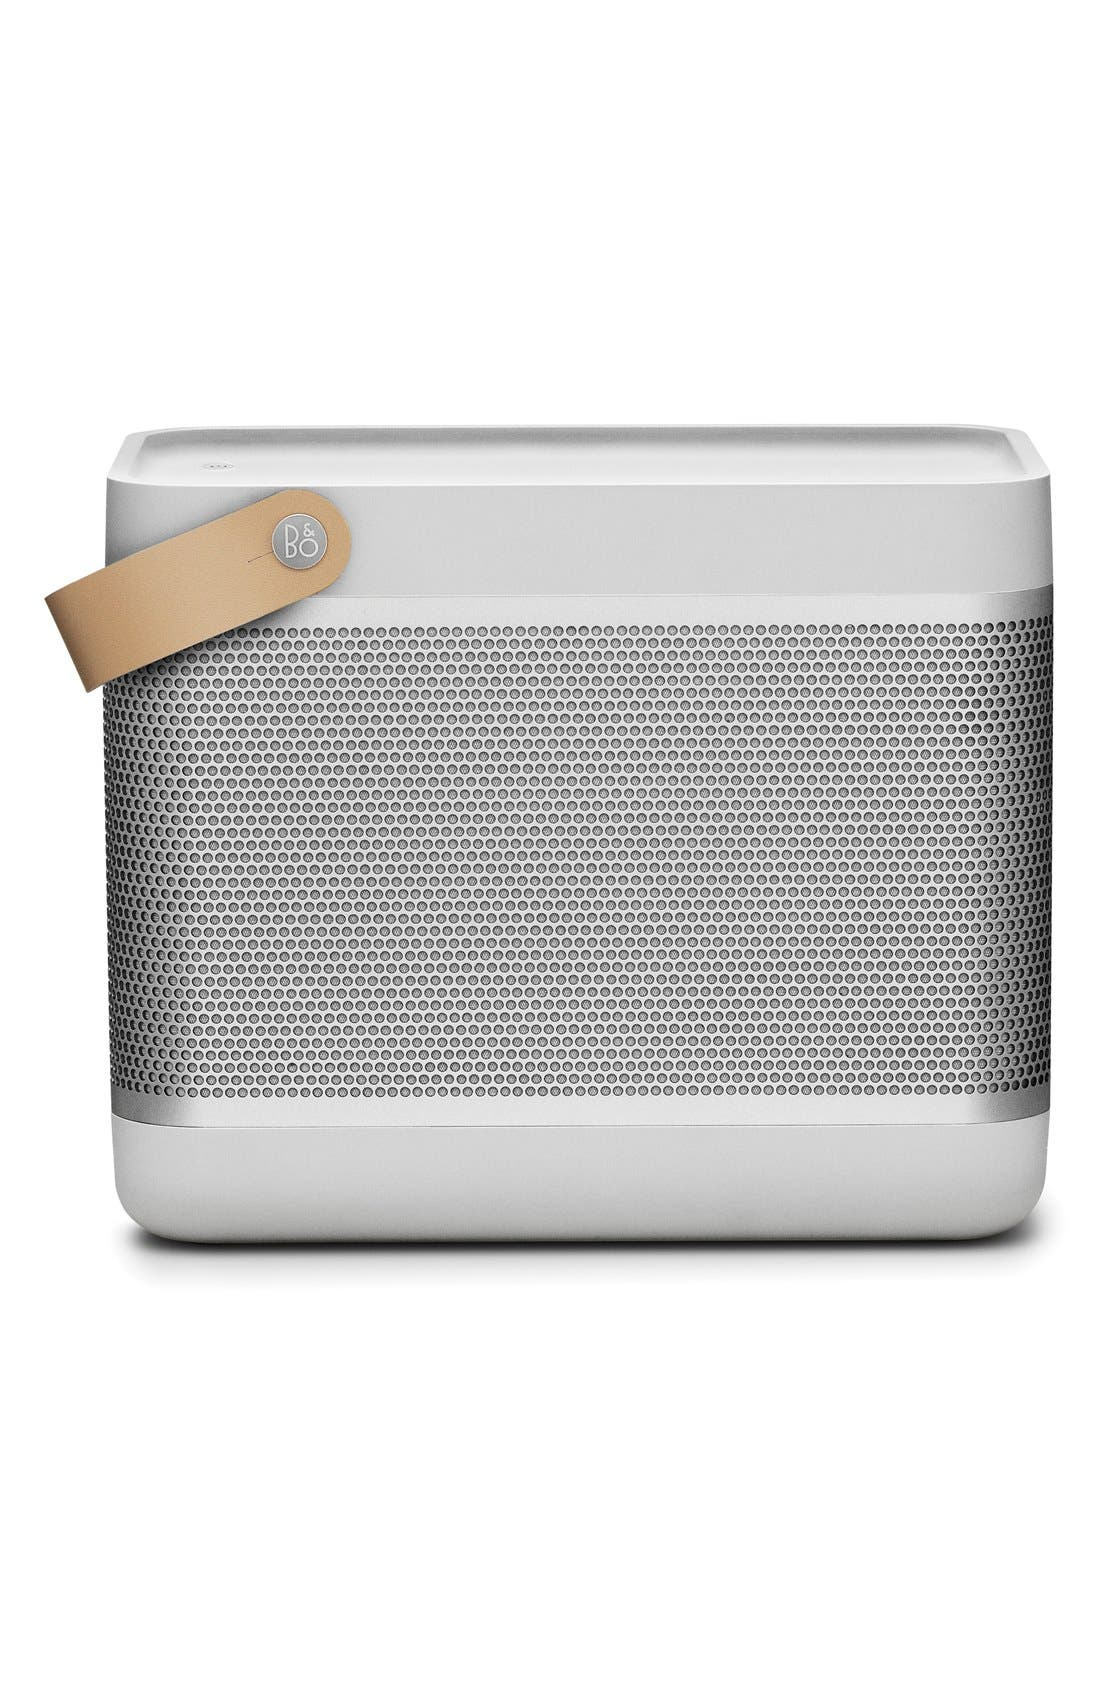 'Beolit 15' Portable Bluetooth<sup>®</sup> Speaker,                             Main thumbnail 1, color,                             040